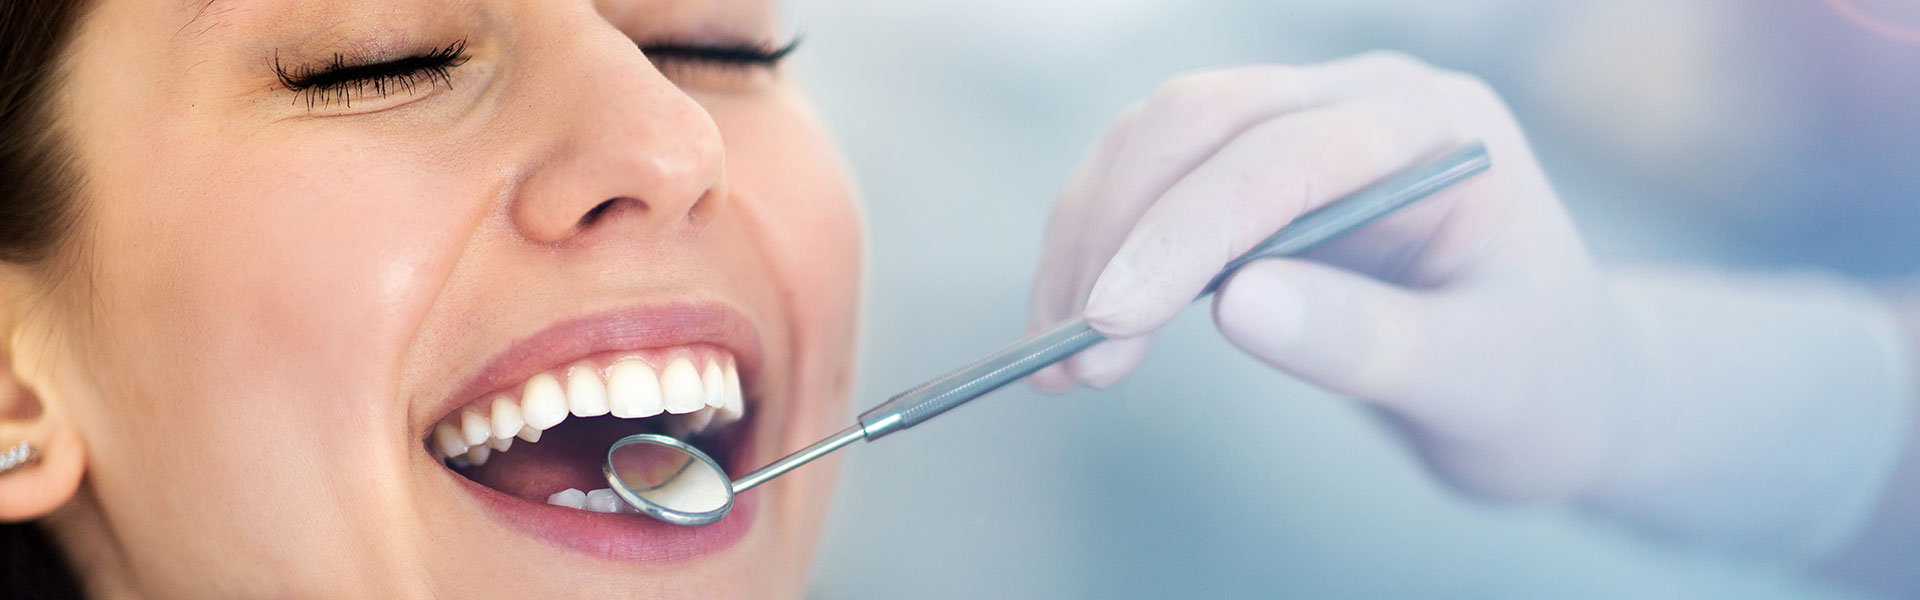 Woman is having preventive care at dental